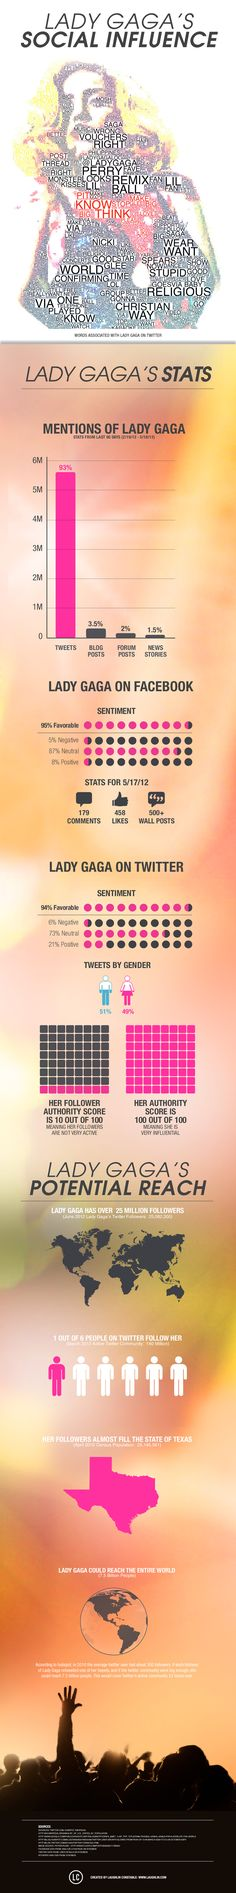 The Social Influence of Lady Gaga - if every person in the world was on Twitter, she'd definitely reach them. #INFOGRAPHIC #LadyGaga